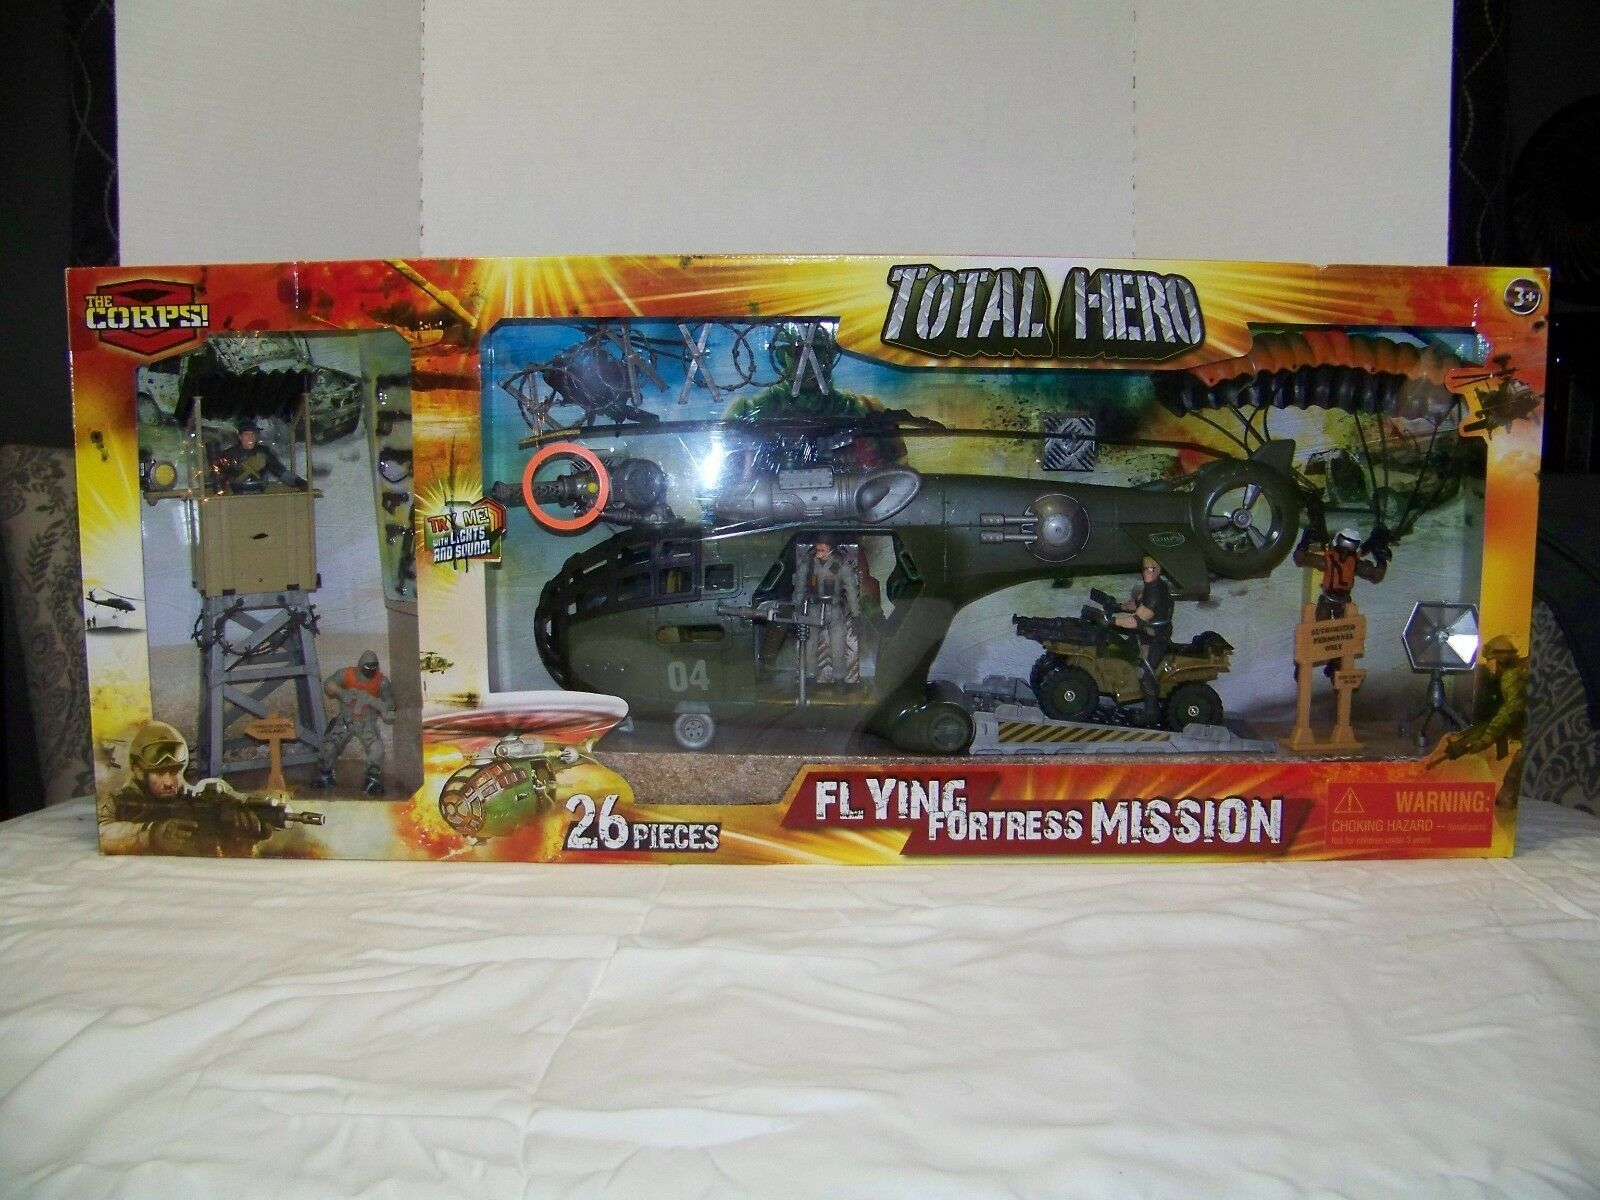 NEW LANARD THE CORPS TOTAL HERO FLYING FORTRESS MISSION 26 PIECE SET